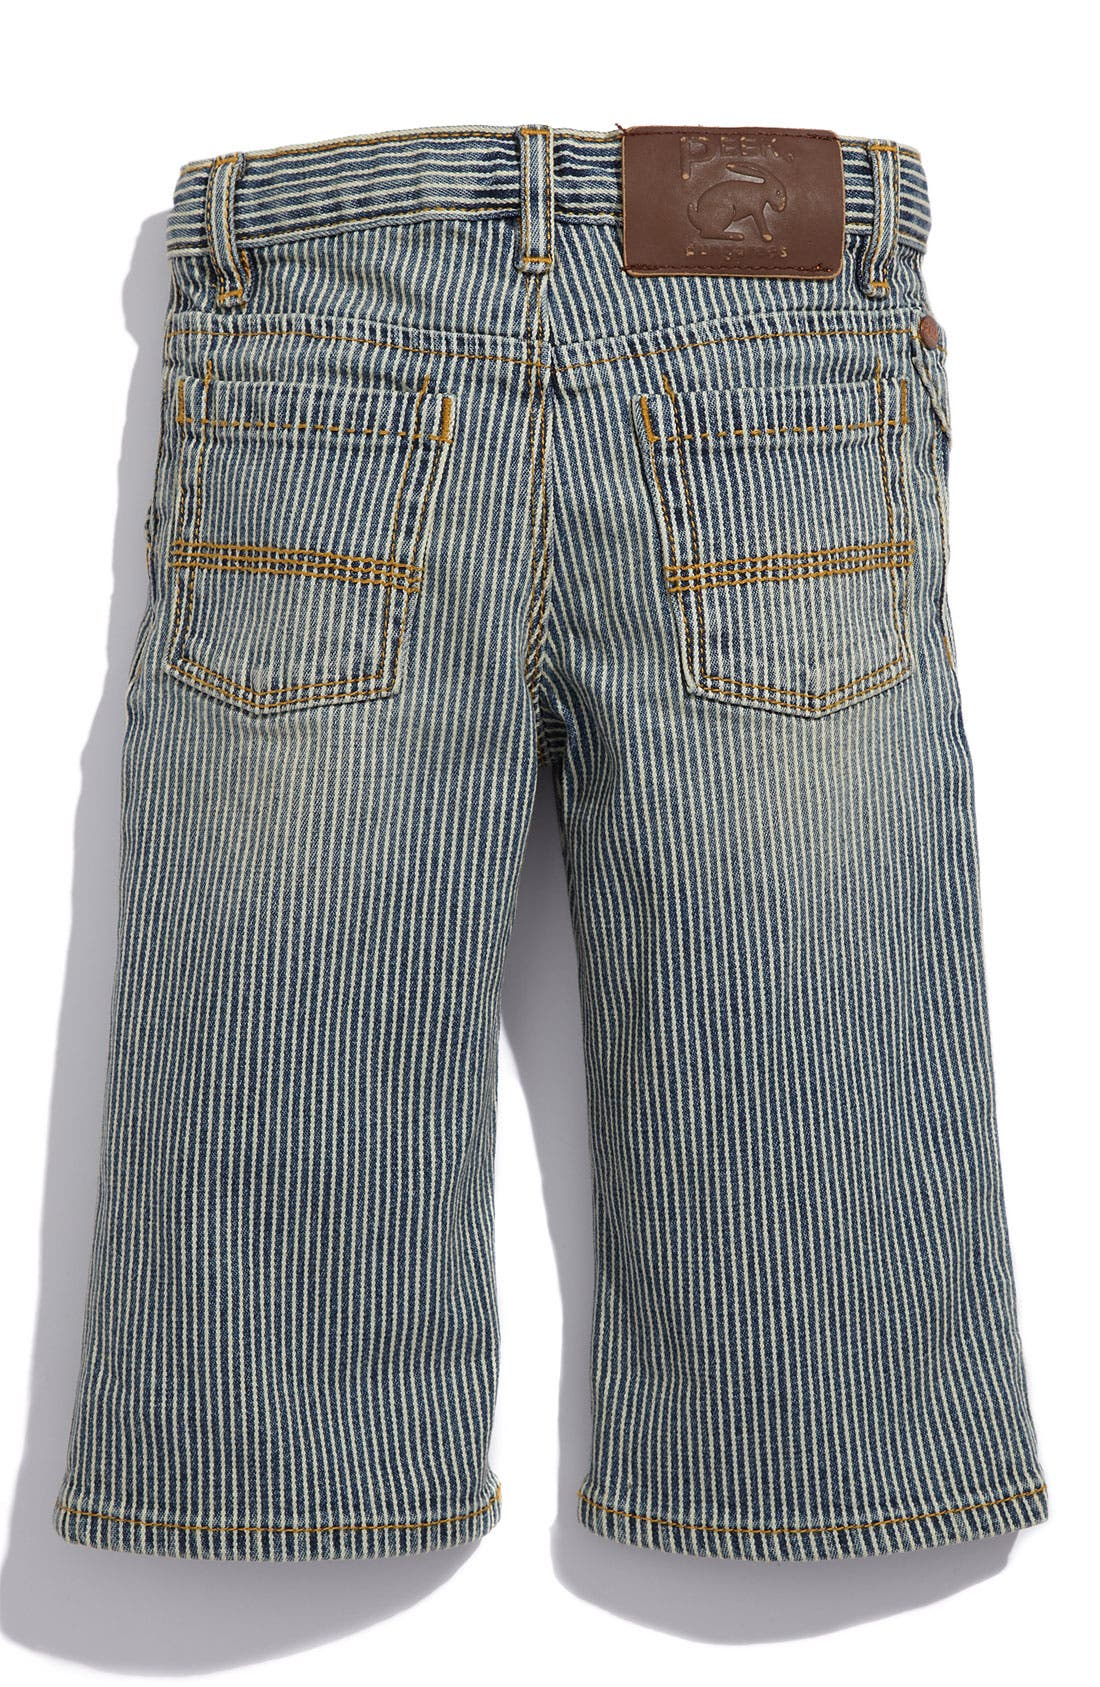 Main Image - Peek 'Big Peanut' Jeans (Infant)